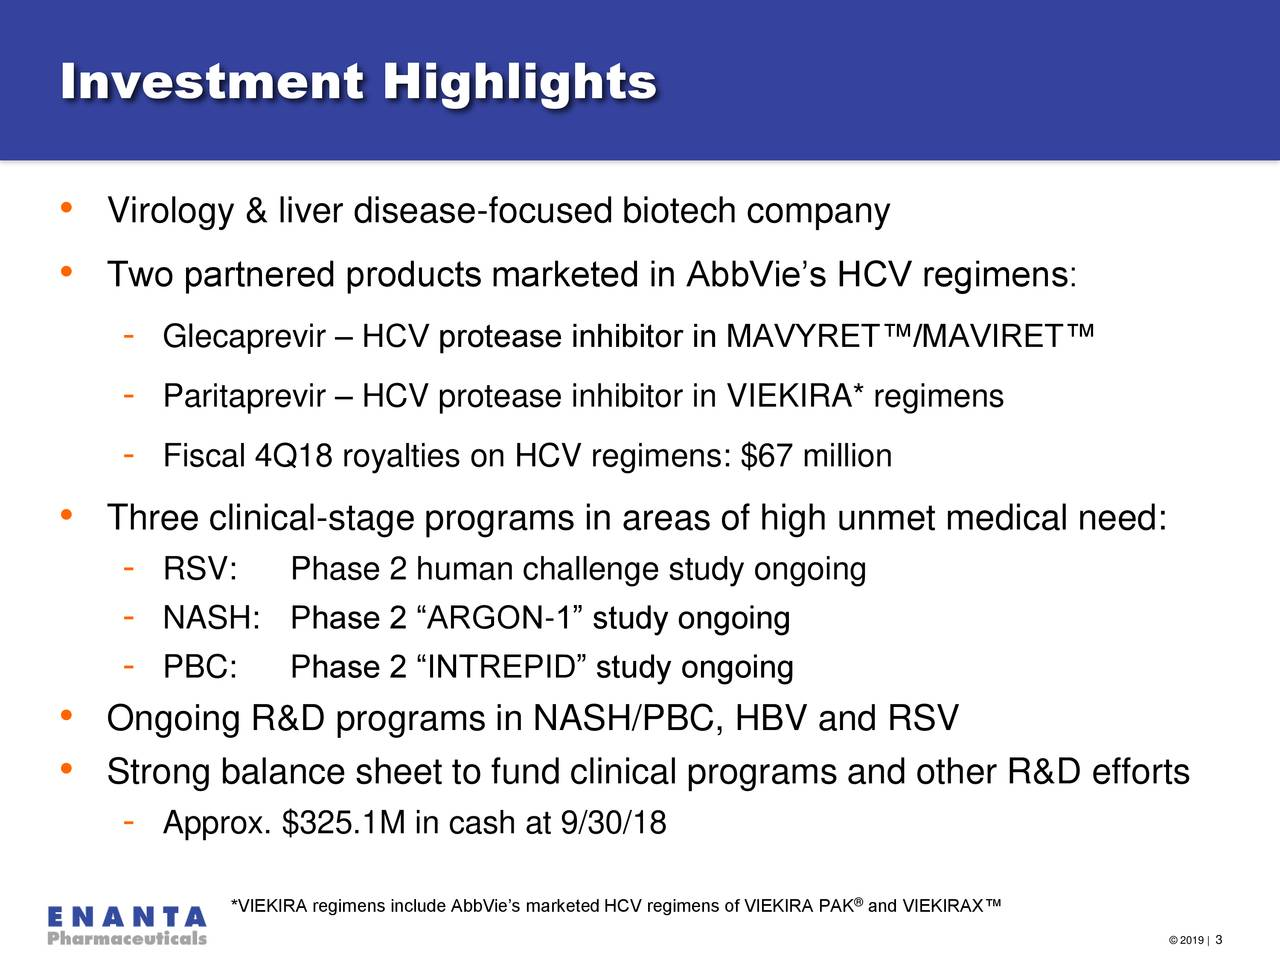 """• Virology & liver disease-focused biotech company • Two partnered products marketed in AbbVie's HCV regimens: - Glecaprevir – HCV protease inhibitor in MAVYRET™/MAVIRET™ - Paritaprevir – HCV protease inhibitor in VIEKIRA* regimens - Fiscal 4Q18 royalties on HCV regimens: $67 million • Three clinical-stage programs in areas of high unmet medical need: - RSV: Phase 2 human challenge study ongoing - NASH: Phase 2 """"ARGON-1"""" study ongoing - PBC: Phase 2 """"INTREPID"""" study ongoing • Ongoing R&D programs in NASH/PBC, HBV and RSV • Strong balance sheet to fund clinical programs and other R&D efforts - Approx. $325.1M in cash at 9/30/18 ® *VIEKIRA regimens include AbbVie's marketed HCV regimens of VIEKIRA PAK and VIEKIRAX™"""